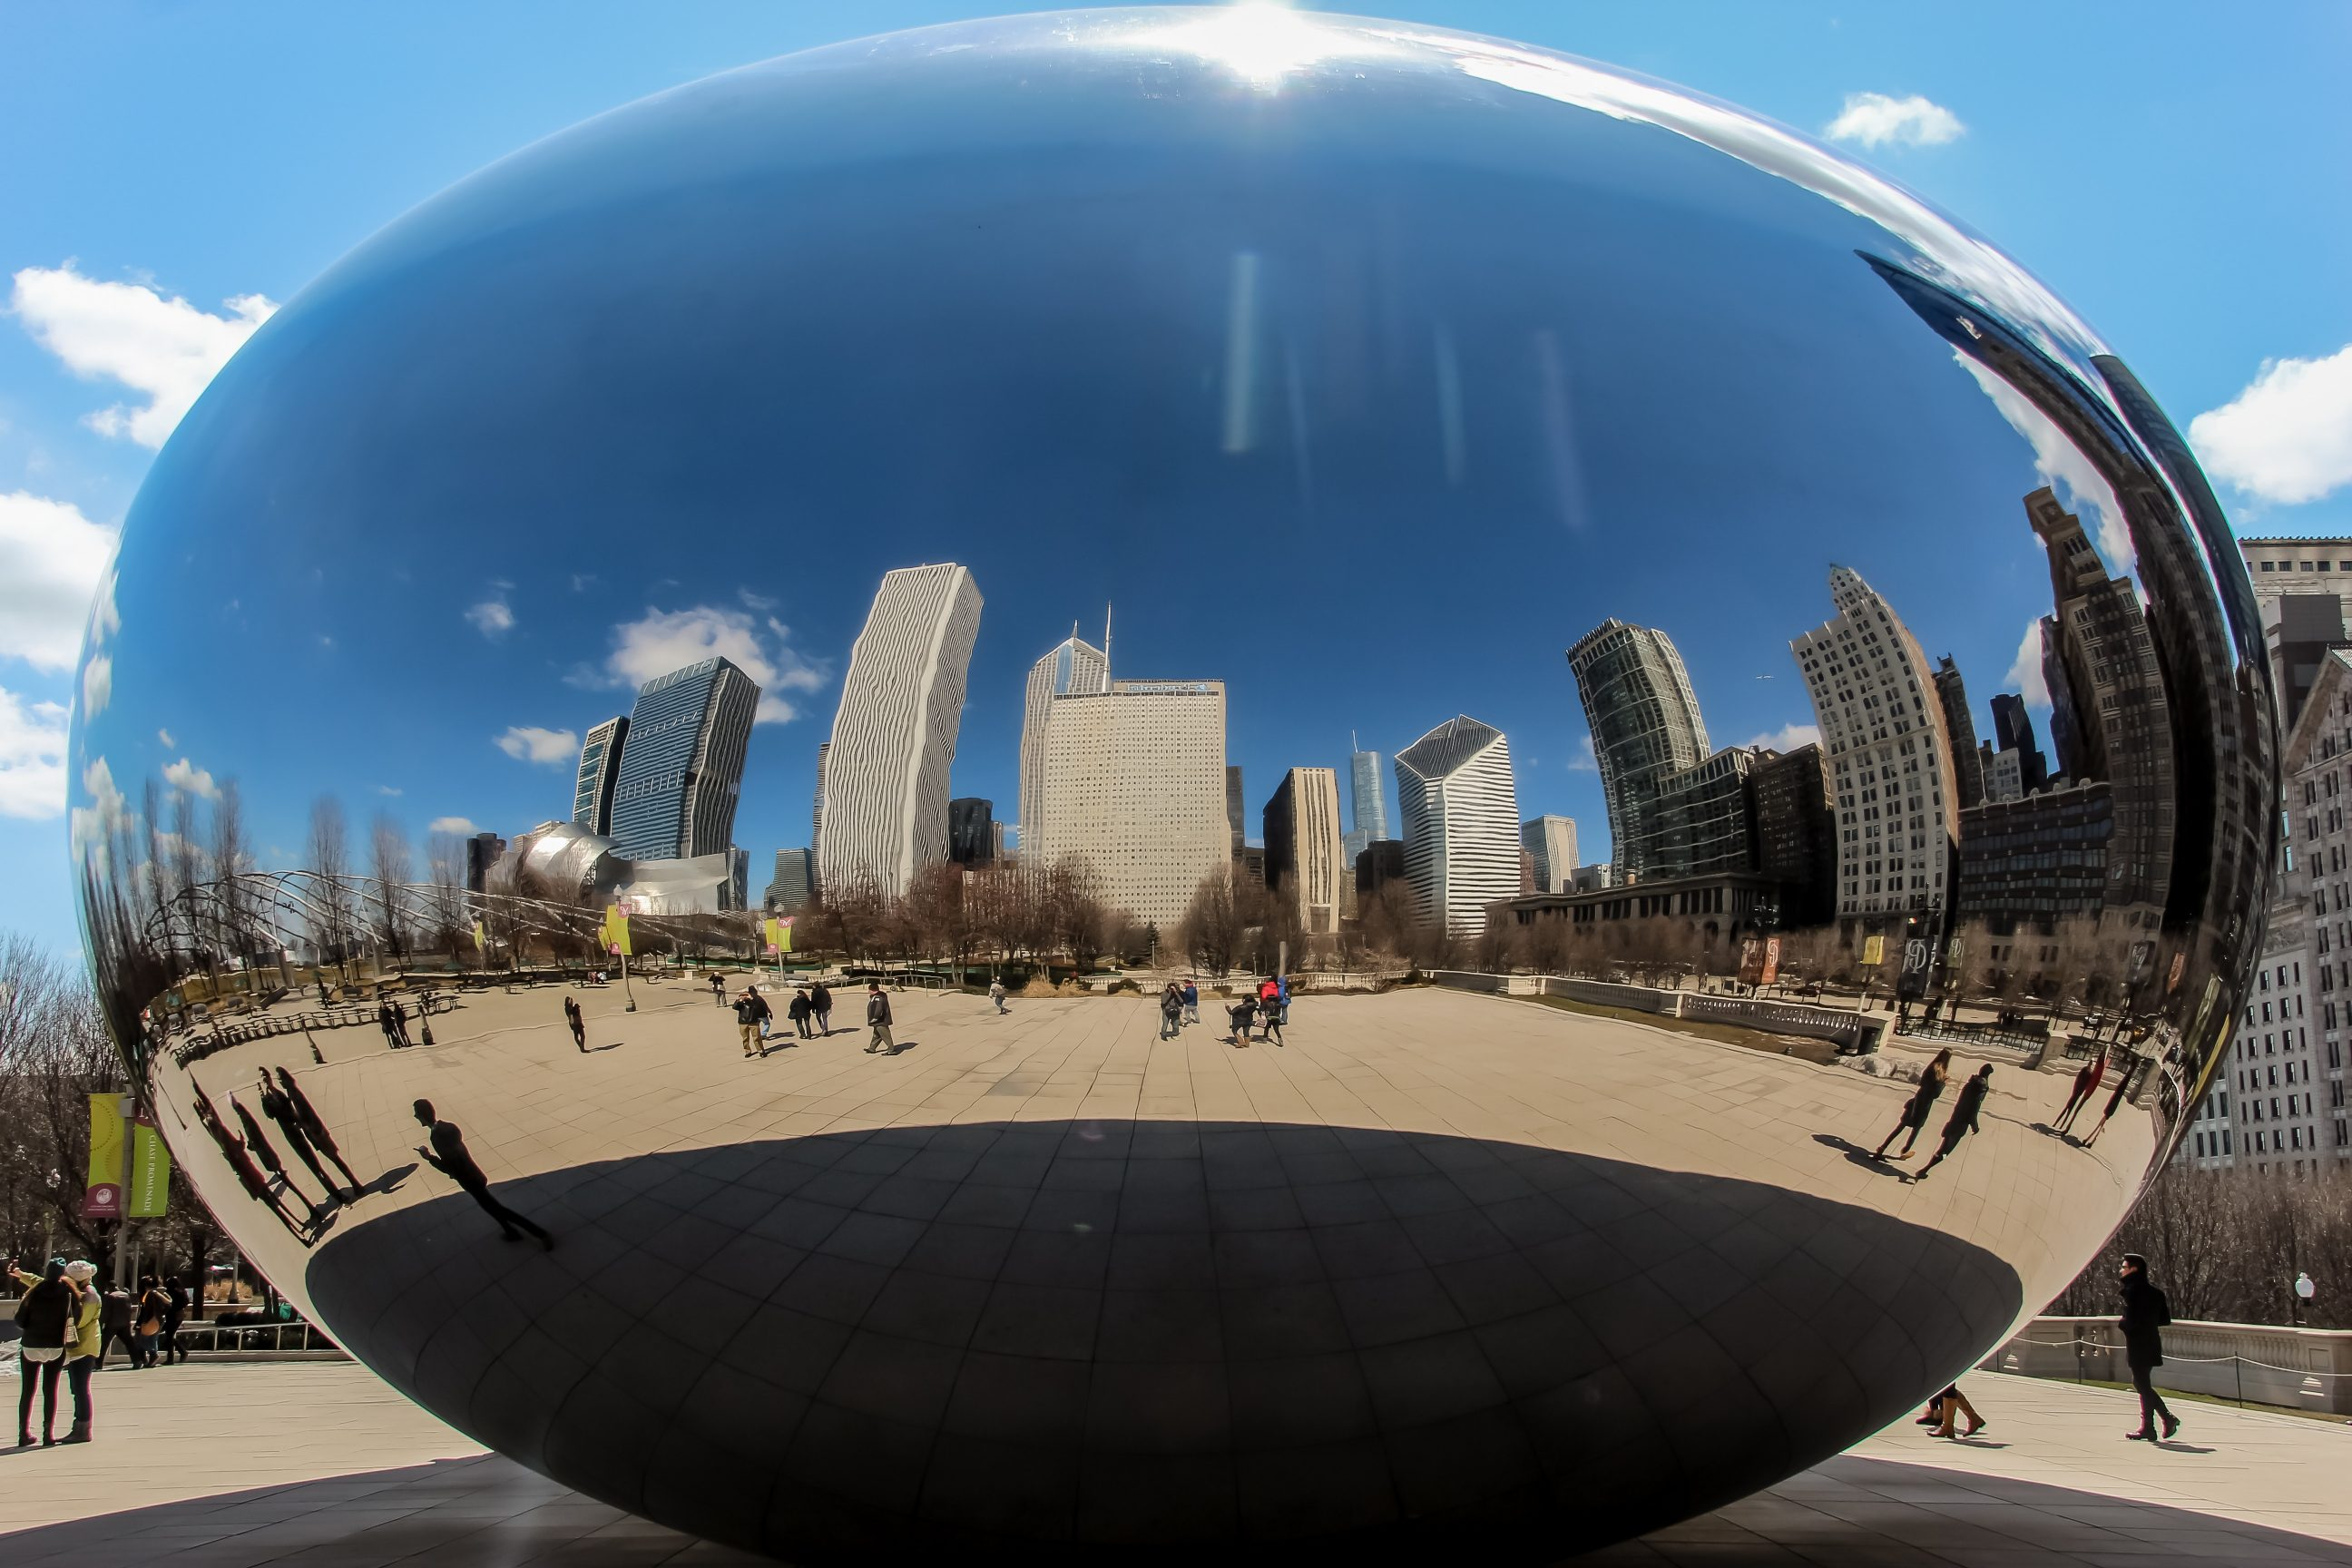 The Bean at Chicago